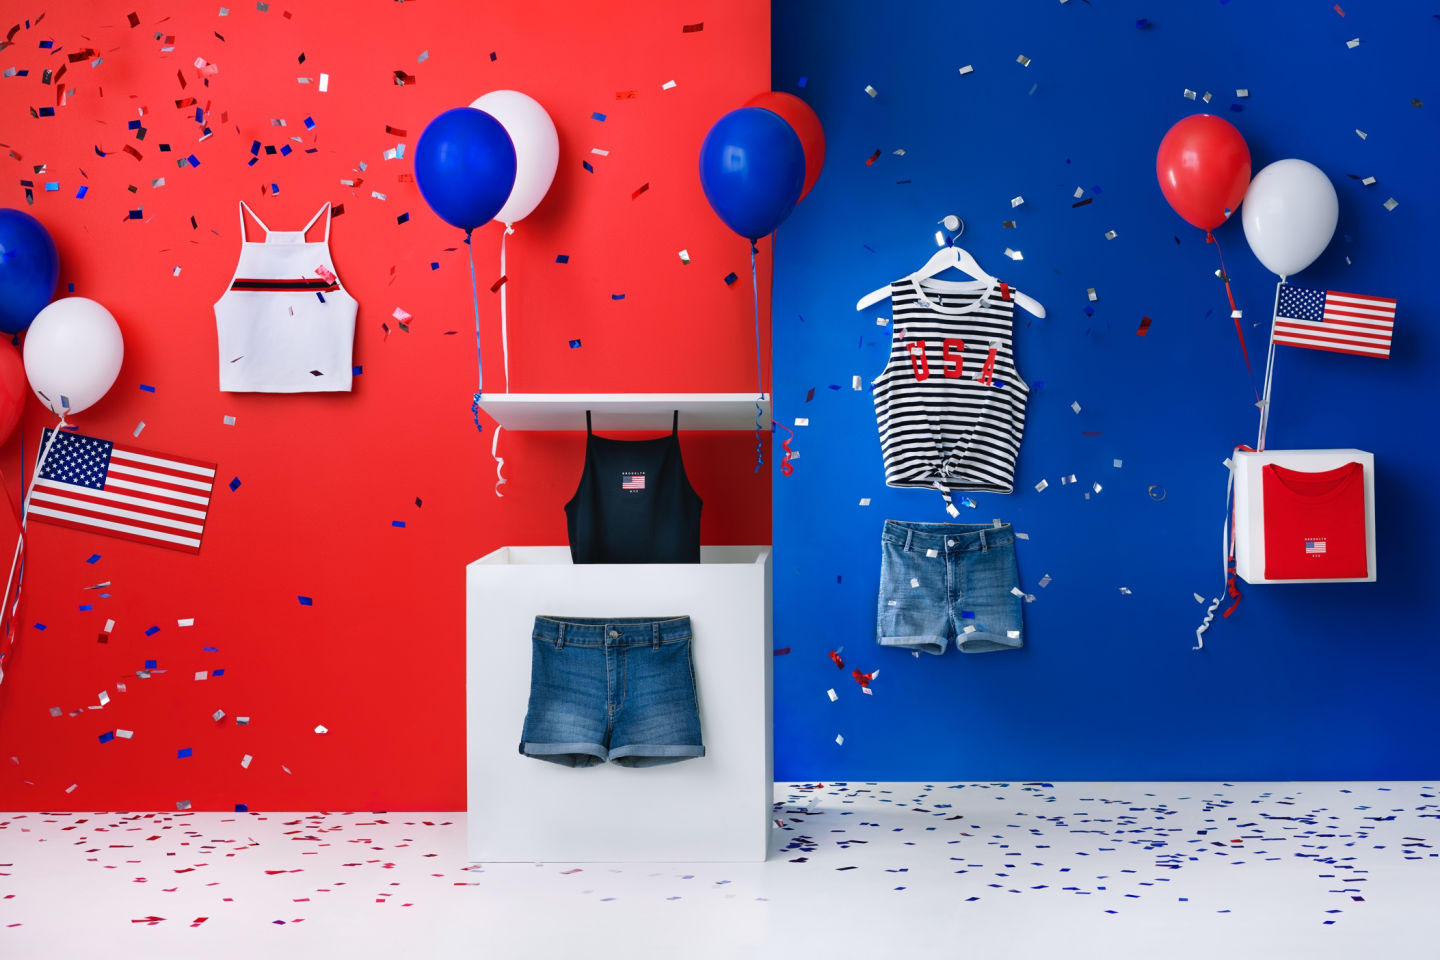 h&m 4th of july sale